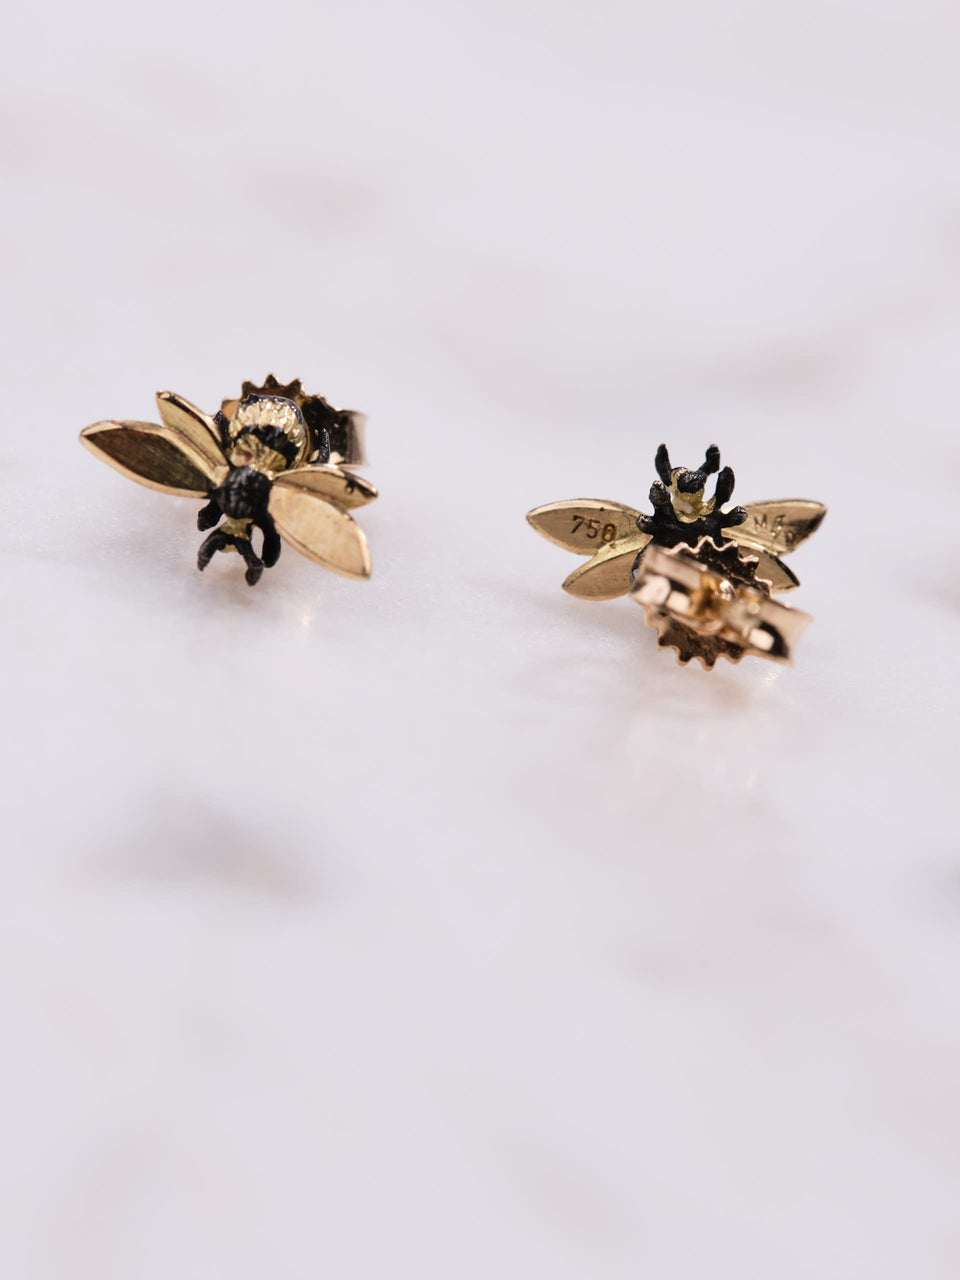 Danger Jewels The Bees Øredobber i 18 karat gull belagt med svart rhodium